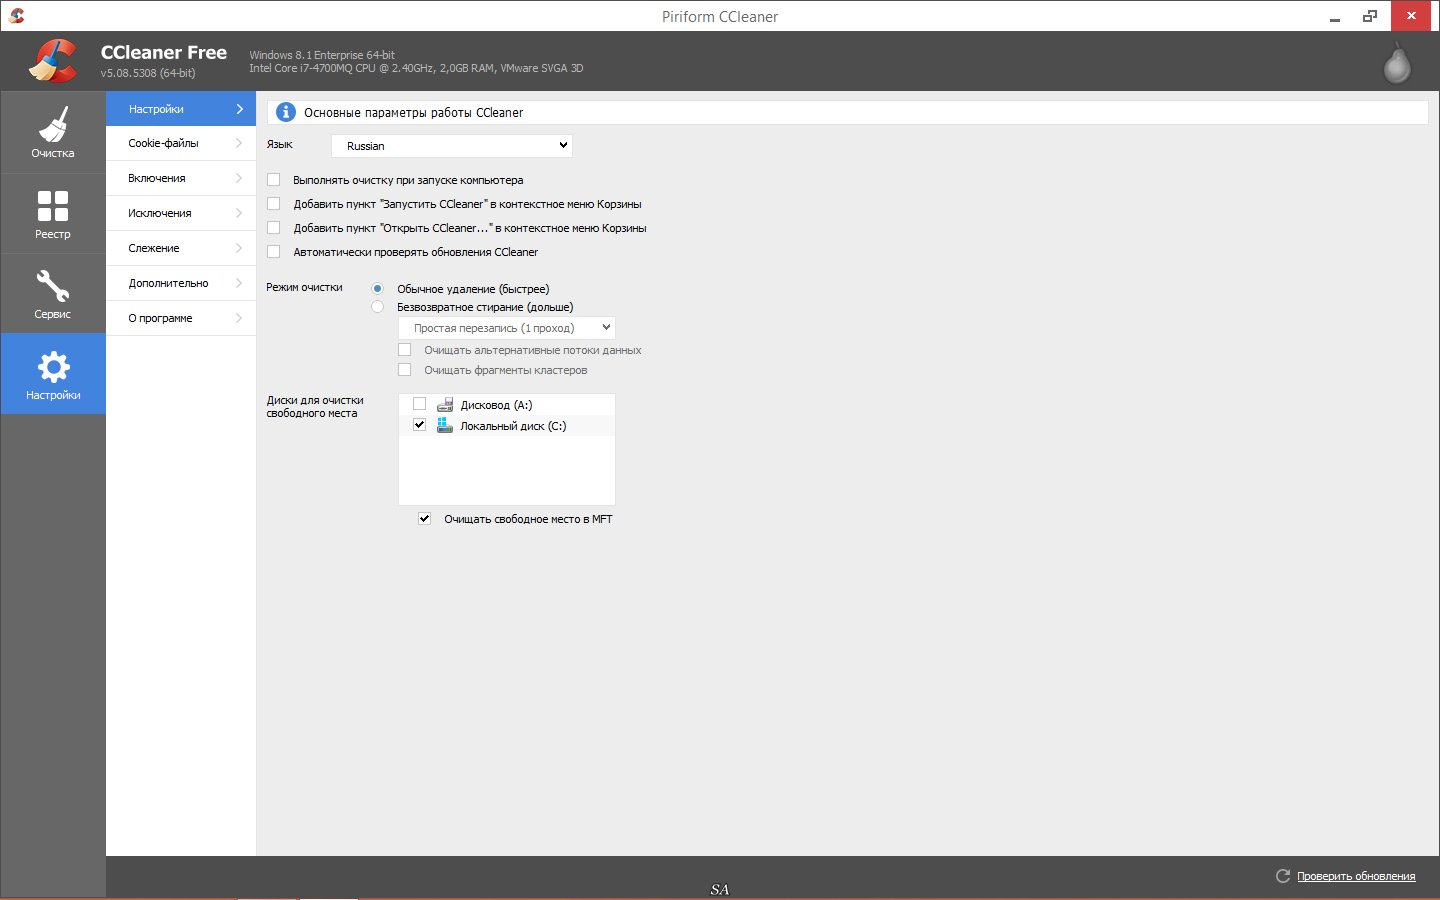 CCleaner 5.08.5308 + Portable [Freeware]